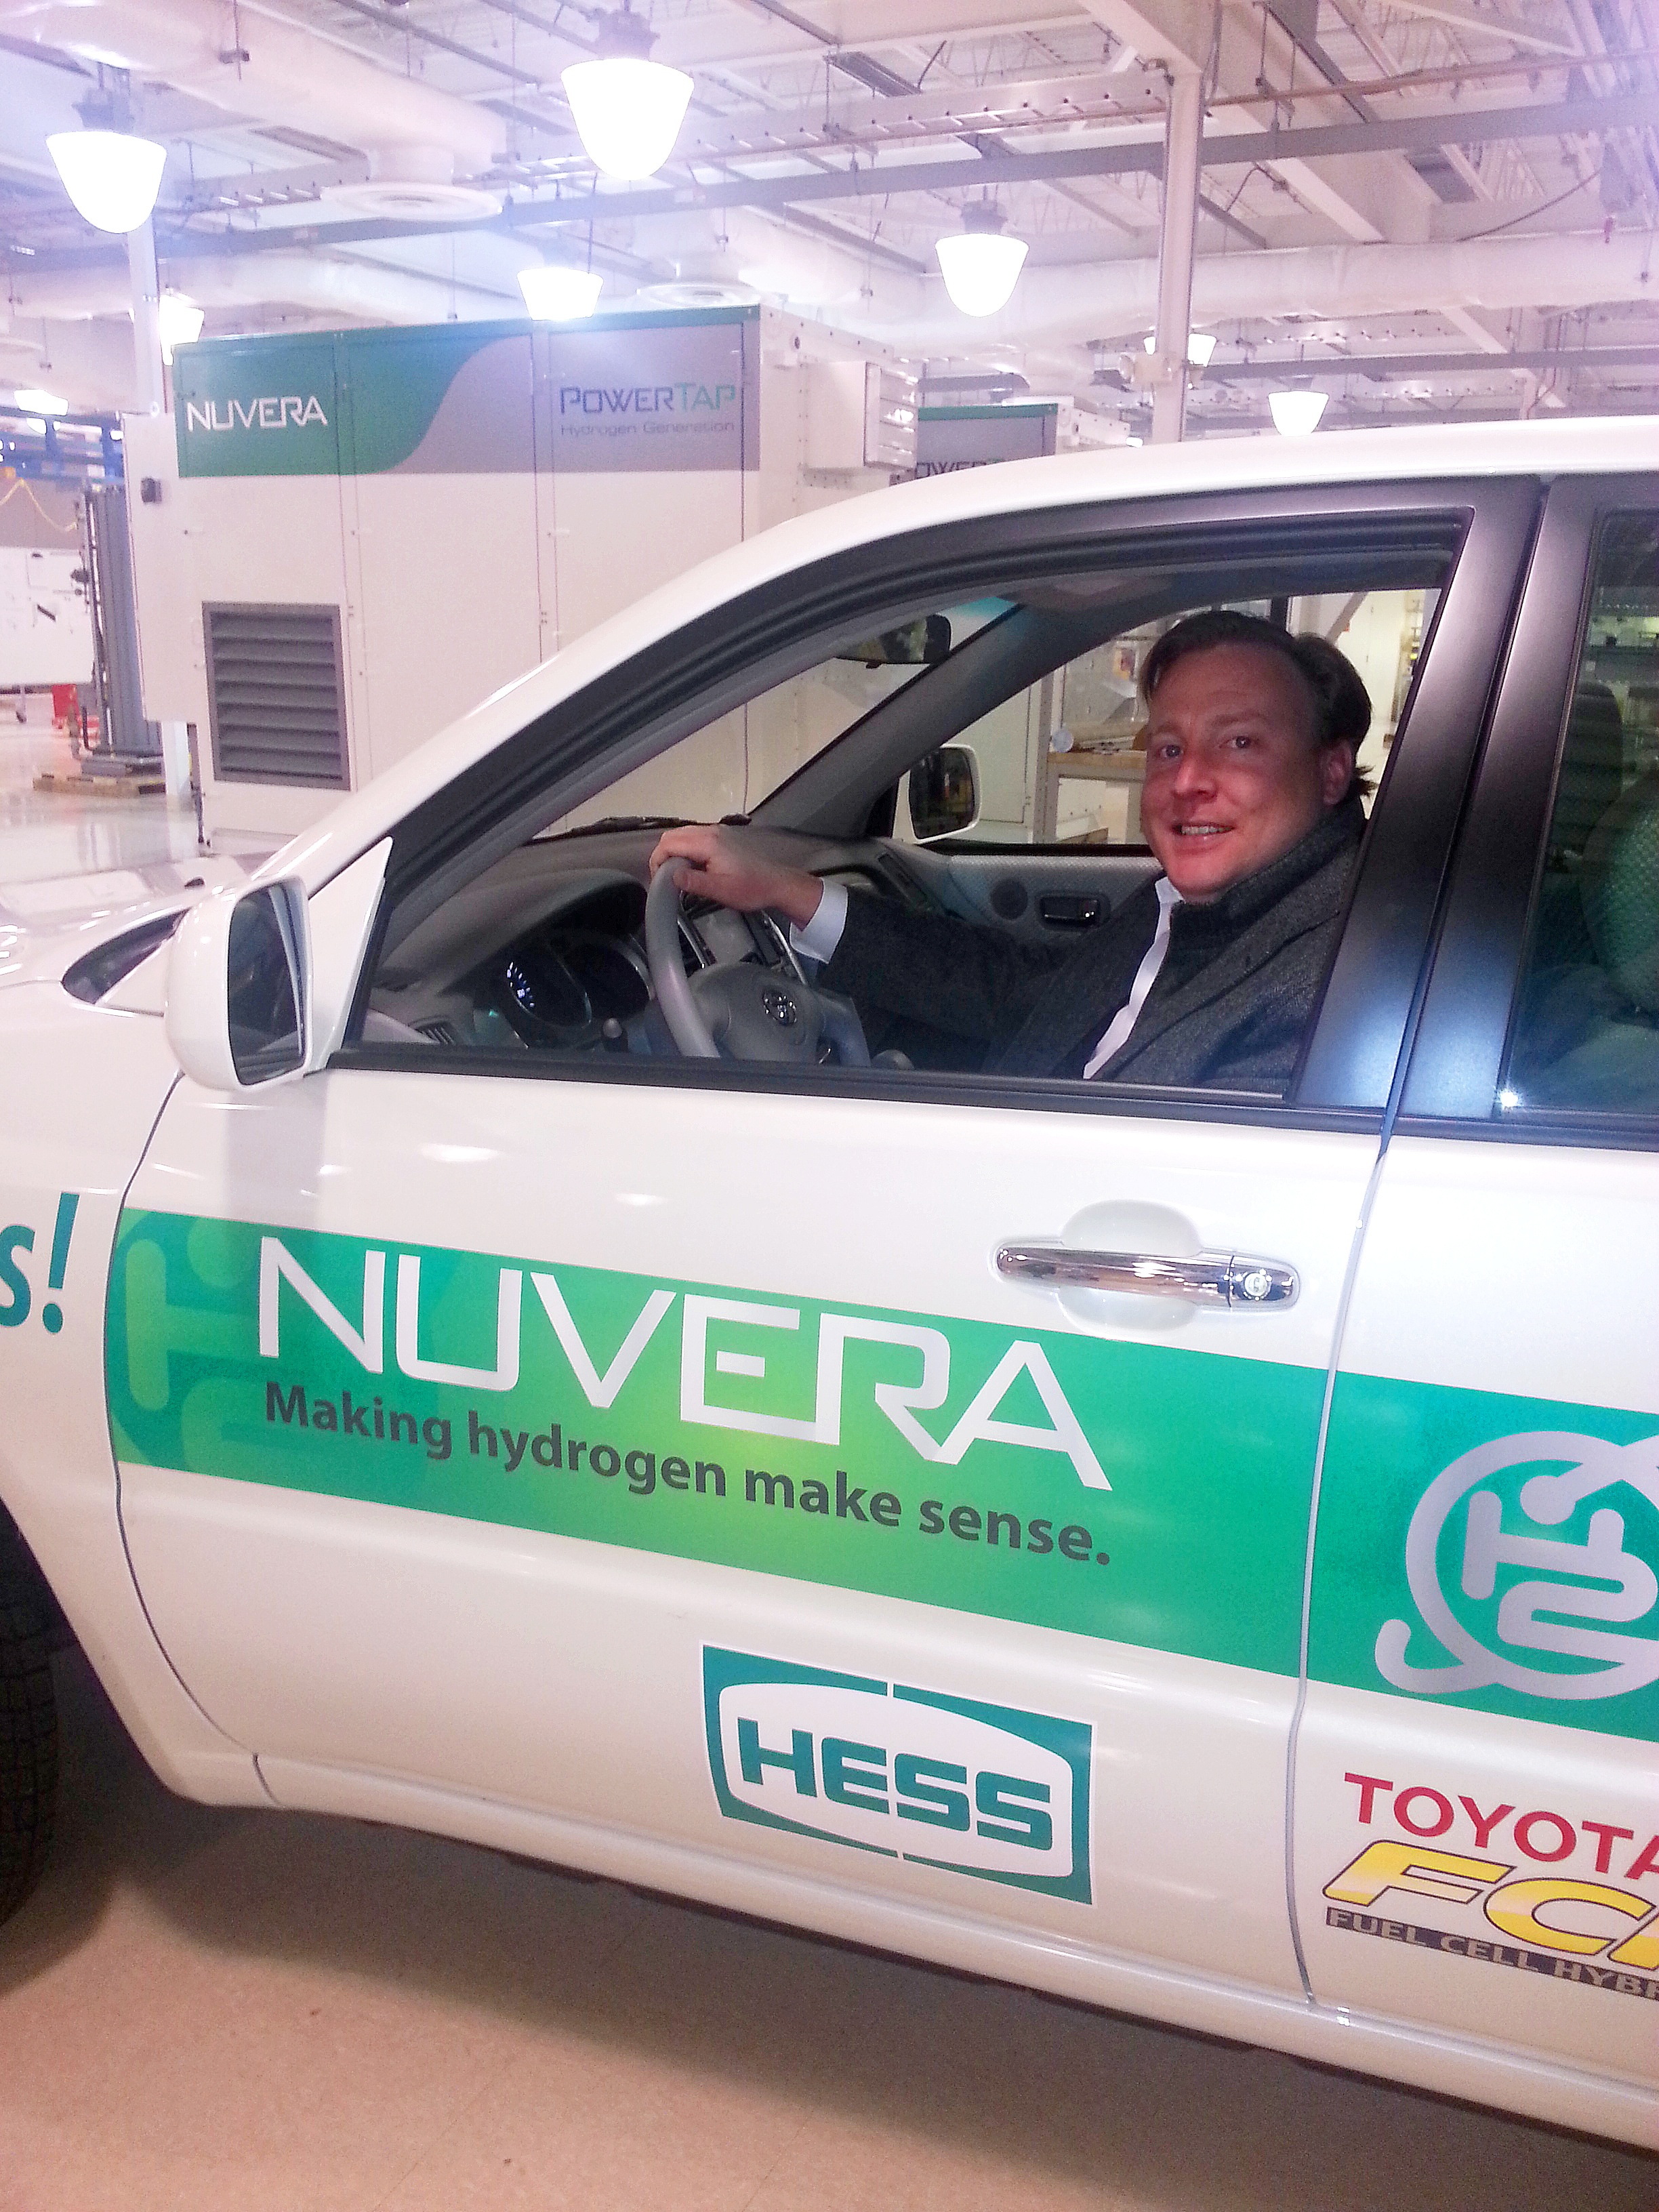 Nuvera Launches First Fuel Cell Vehicle Program of its kind in Massachusetts